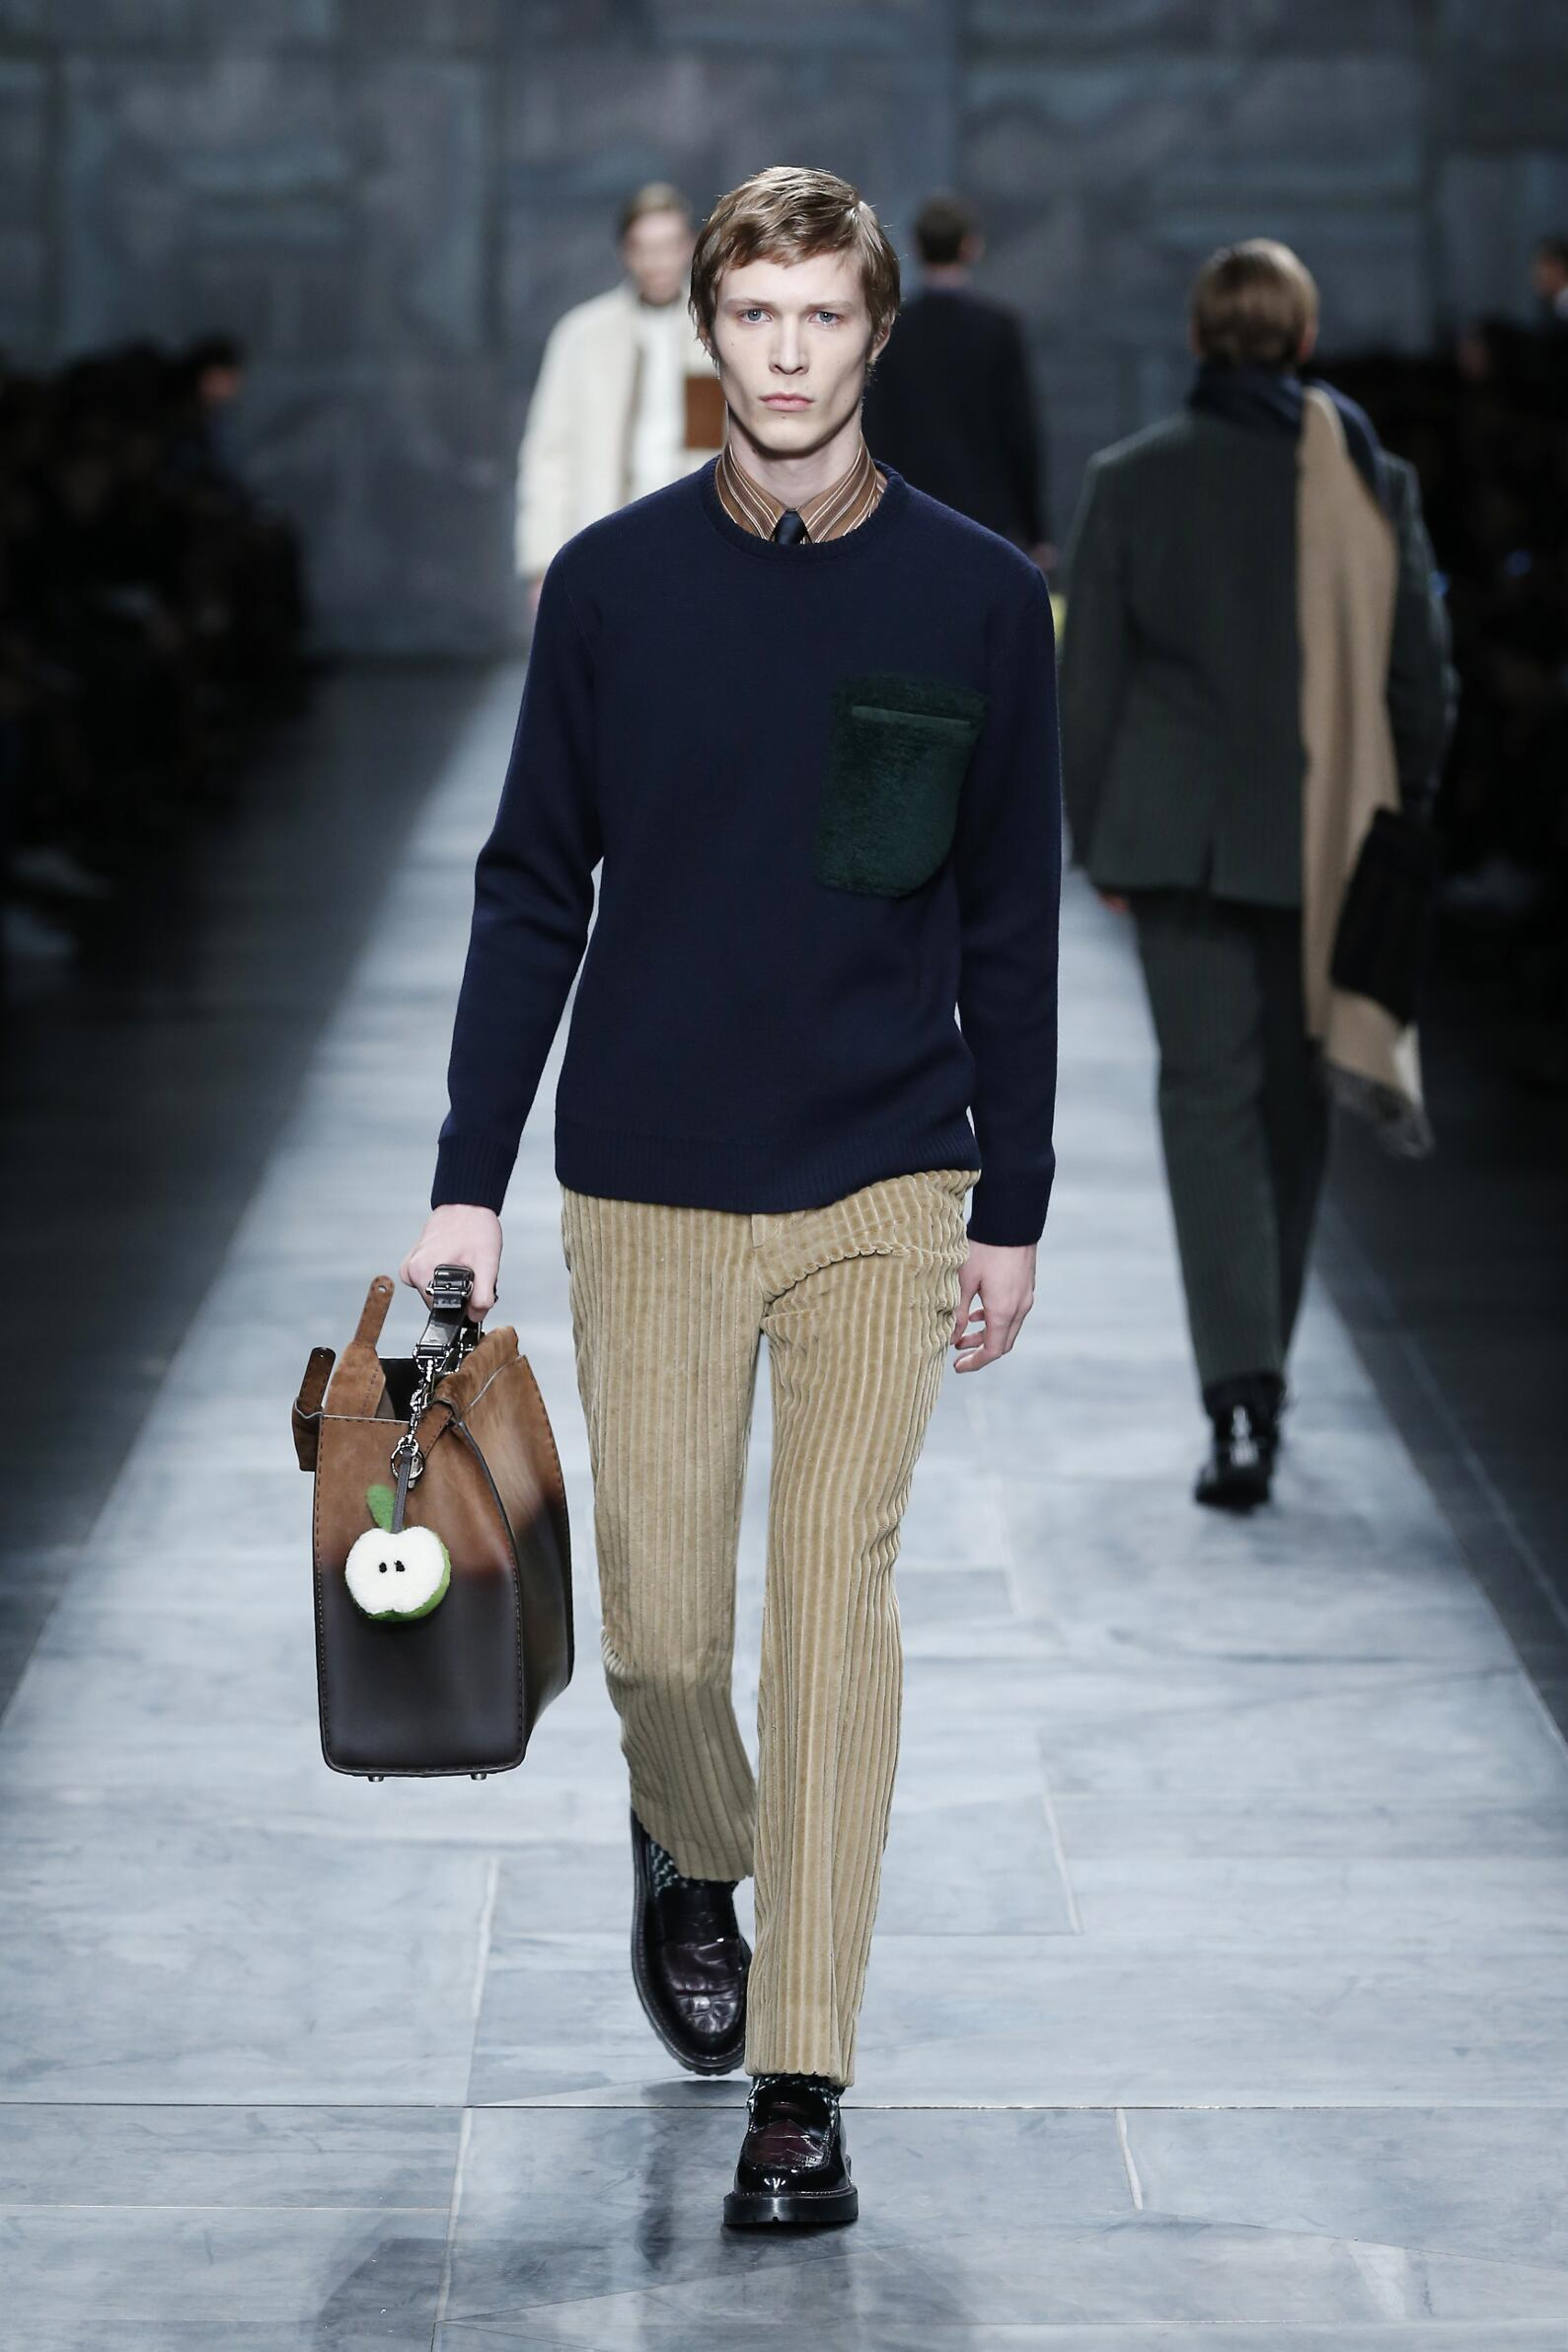 FENDI FALL WINTER 2015-16 MEN'S COLLECTION